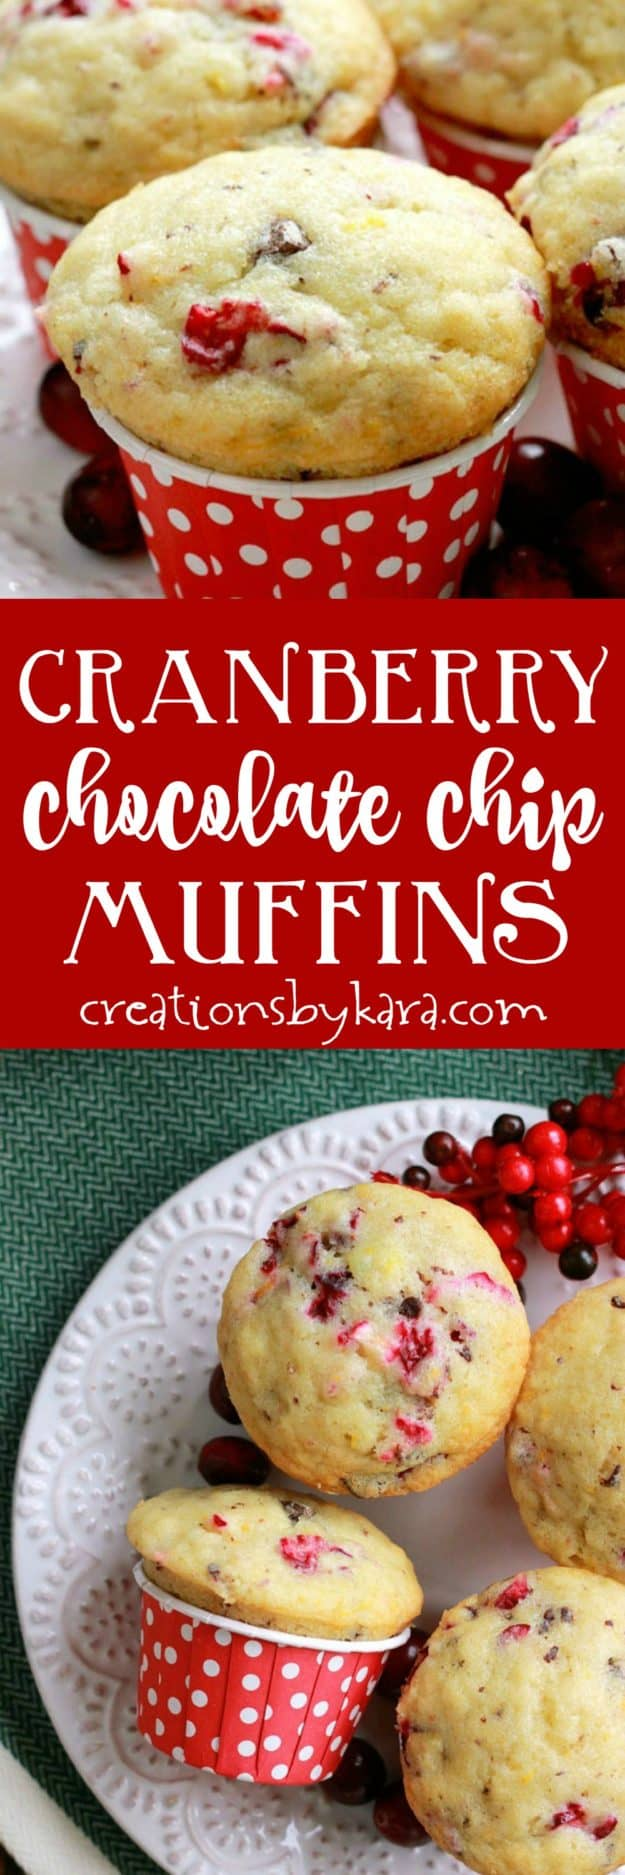 These Cranberry Chocolate Chip Muffins are moist and delicious. A perfect holiday muffin recipe. They would be perfect for Christmas brunch!